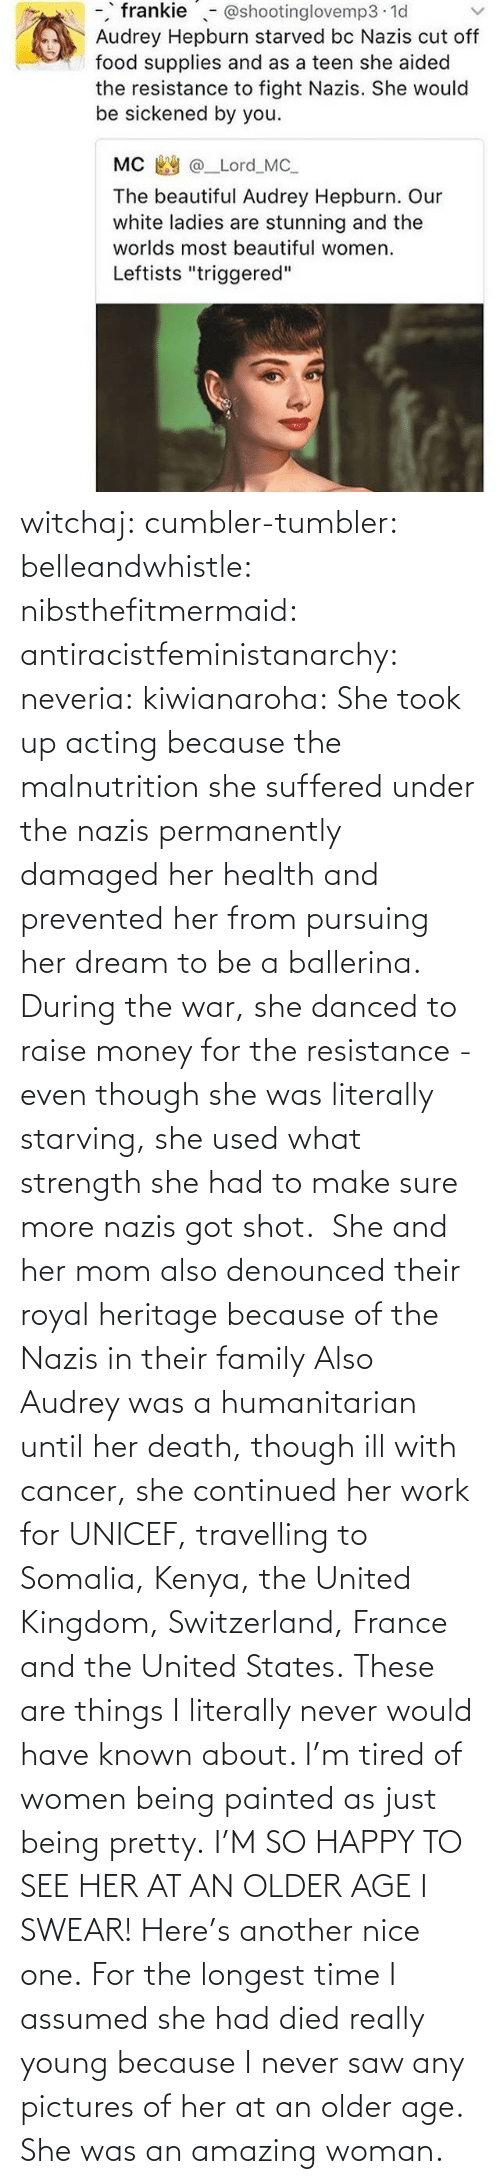 used: witchaj: cumbler-tumbler:  belleandwhistle:  nibsthefitmermaid:  antiracistfeministanarchy:  neveria:  kiwianaroha: She took up acting because the malnutrition she suffered under the nazis permanently damaged her health and prevented her from pursuing her dream to be a ballerina. During the war, she danced to raise money for the resistance - even though she was literally starving, she used what strength she had to make sure more nazis got shot.  She and her mom also denounced their royal heritage because of the Nazis in their family  Also Audrey was a humanitarian until her death, though ill with cancer, she continued her work for UNICEF, travelling to Somalia, Kenya, the United Kingdom, Switzerland, France and the United States.  These are things I literally never would have known about. I'm tired of women being painted as just being pretty.  I'M SO HAPPY TO SEE HER AT AN OLDER AGE I SWEAR!  Here's another nice one.   For the longest time I assumed she had died really young because I never saw any pictures of her at an older age.  She was an amazing woman.